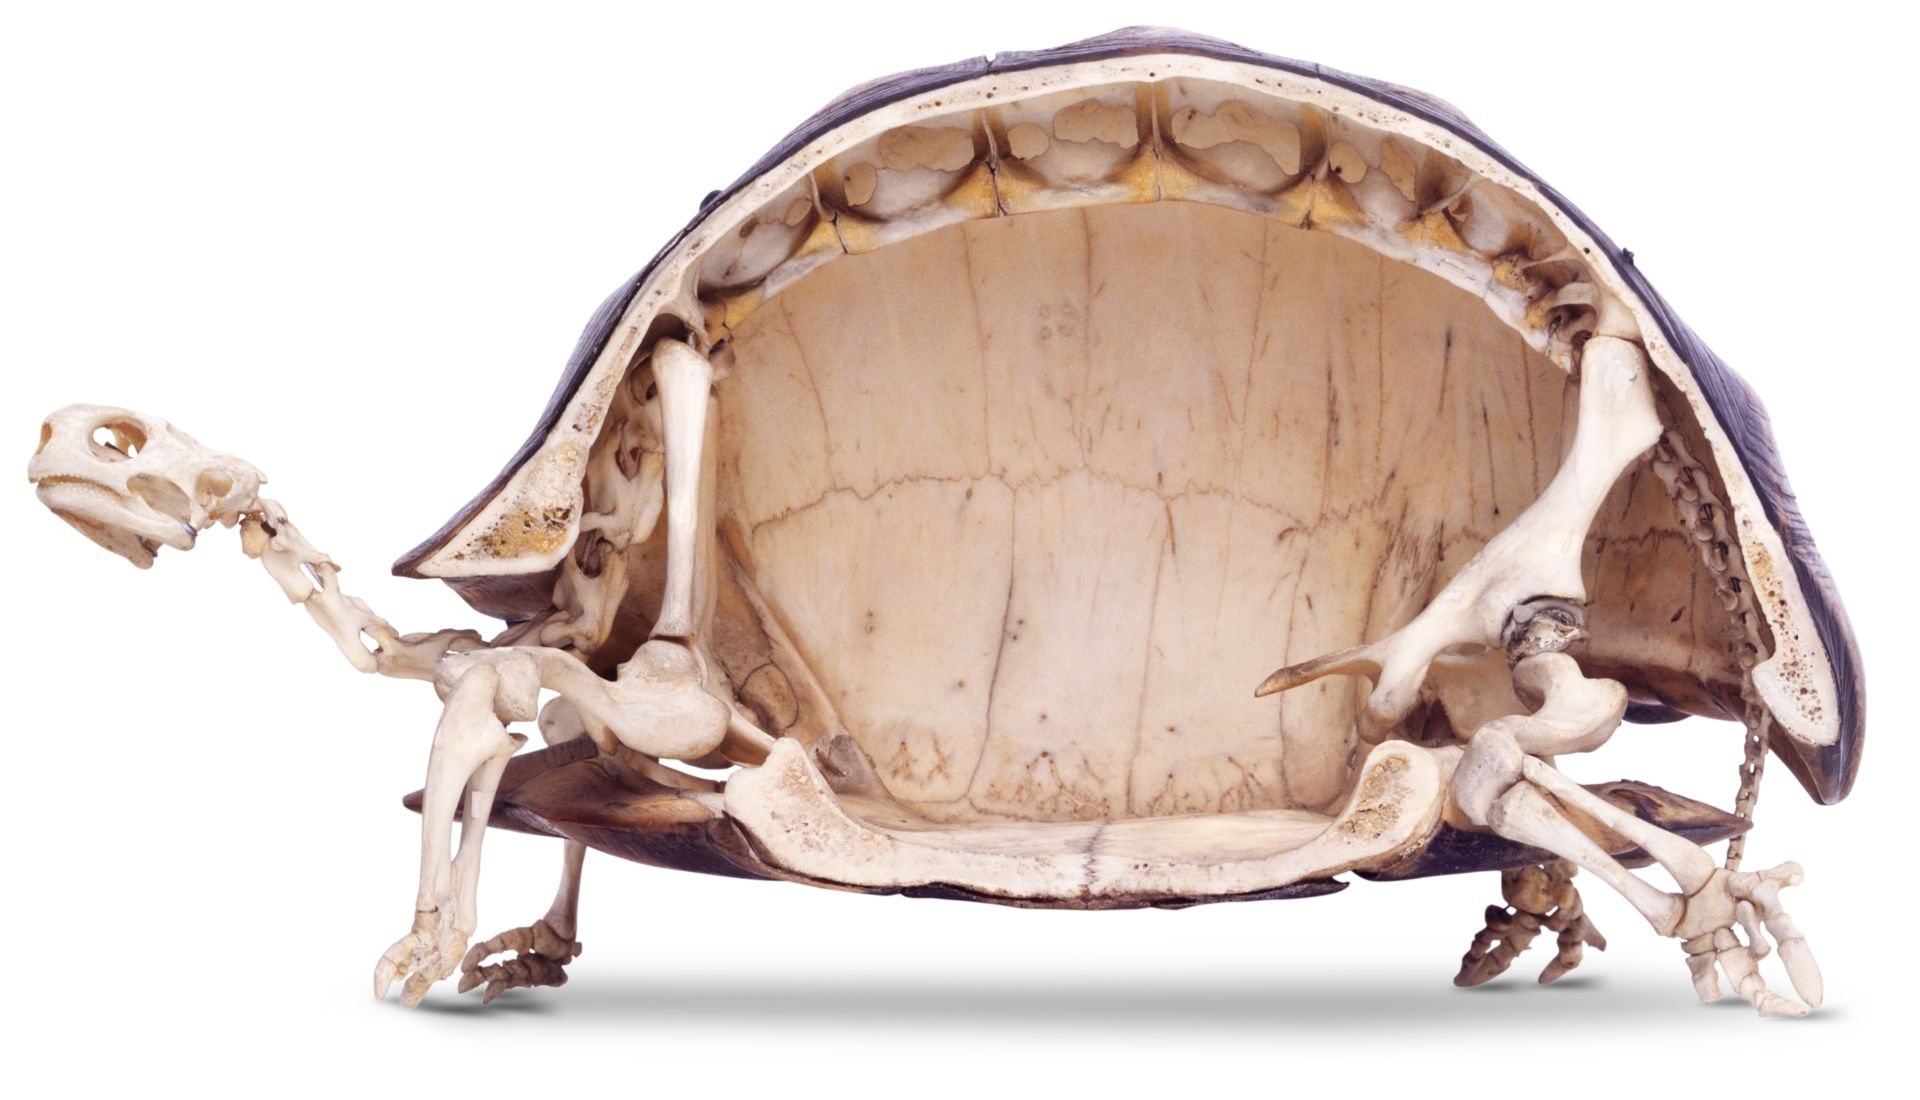 Tortoise Skeleton Anatomy Dk Find Out Snake Diagram The Skull At Very Dctm Penguin Uk Al674019 Xat5zk